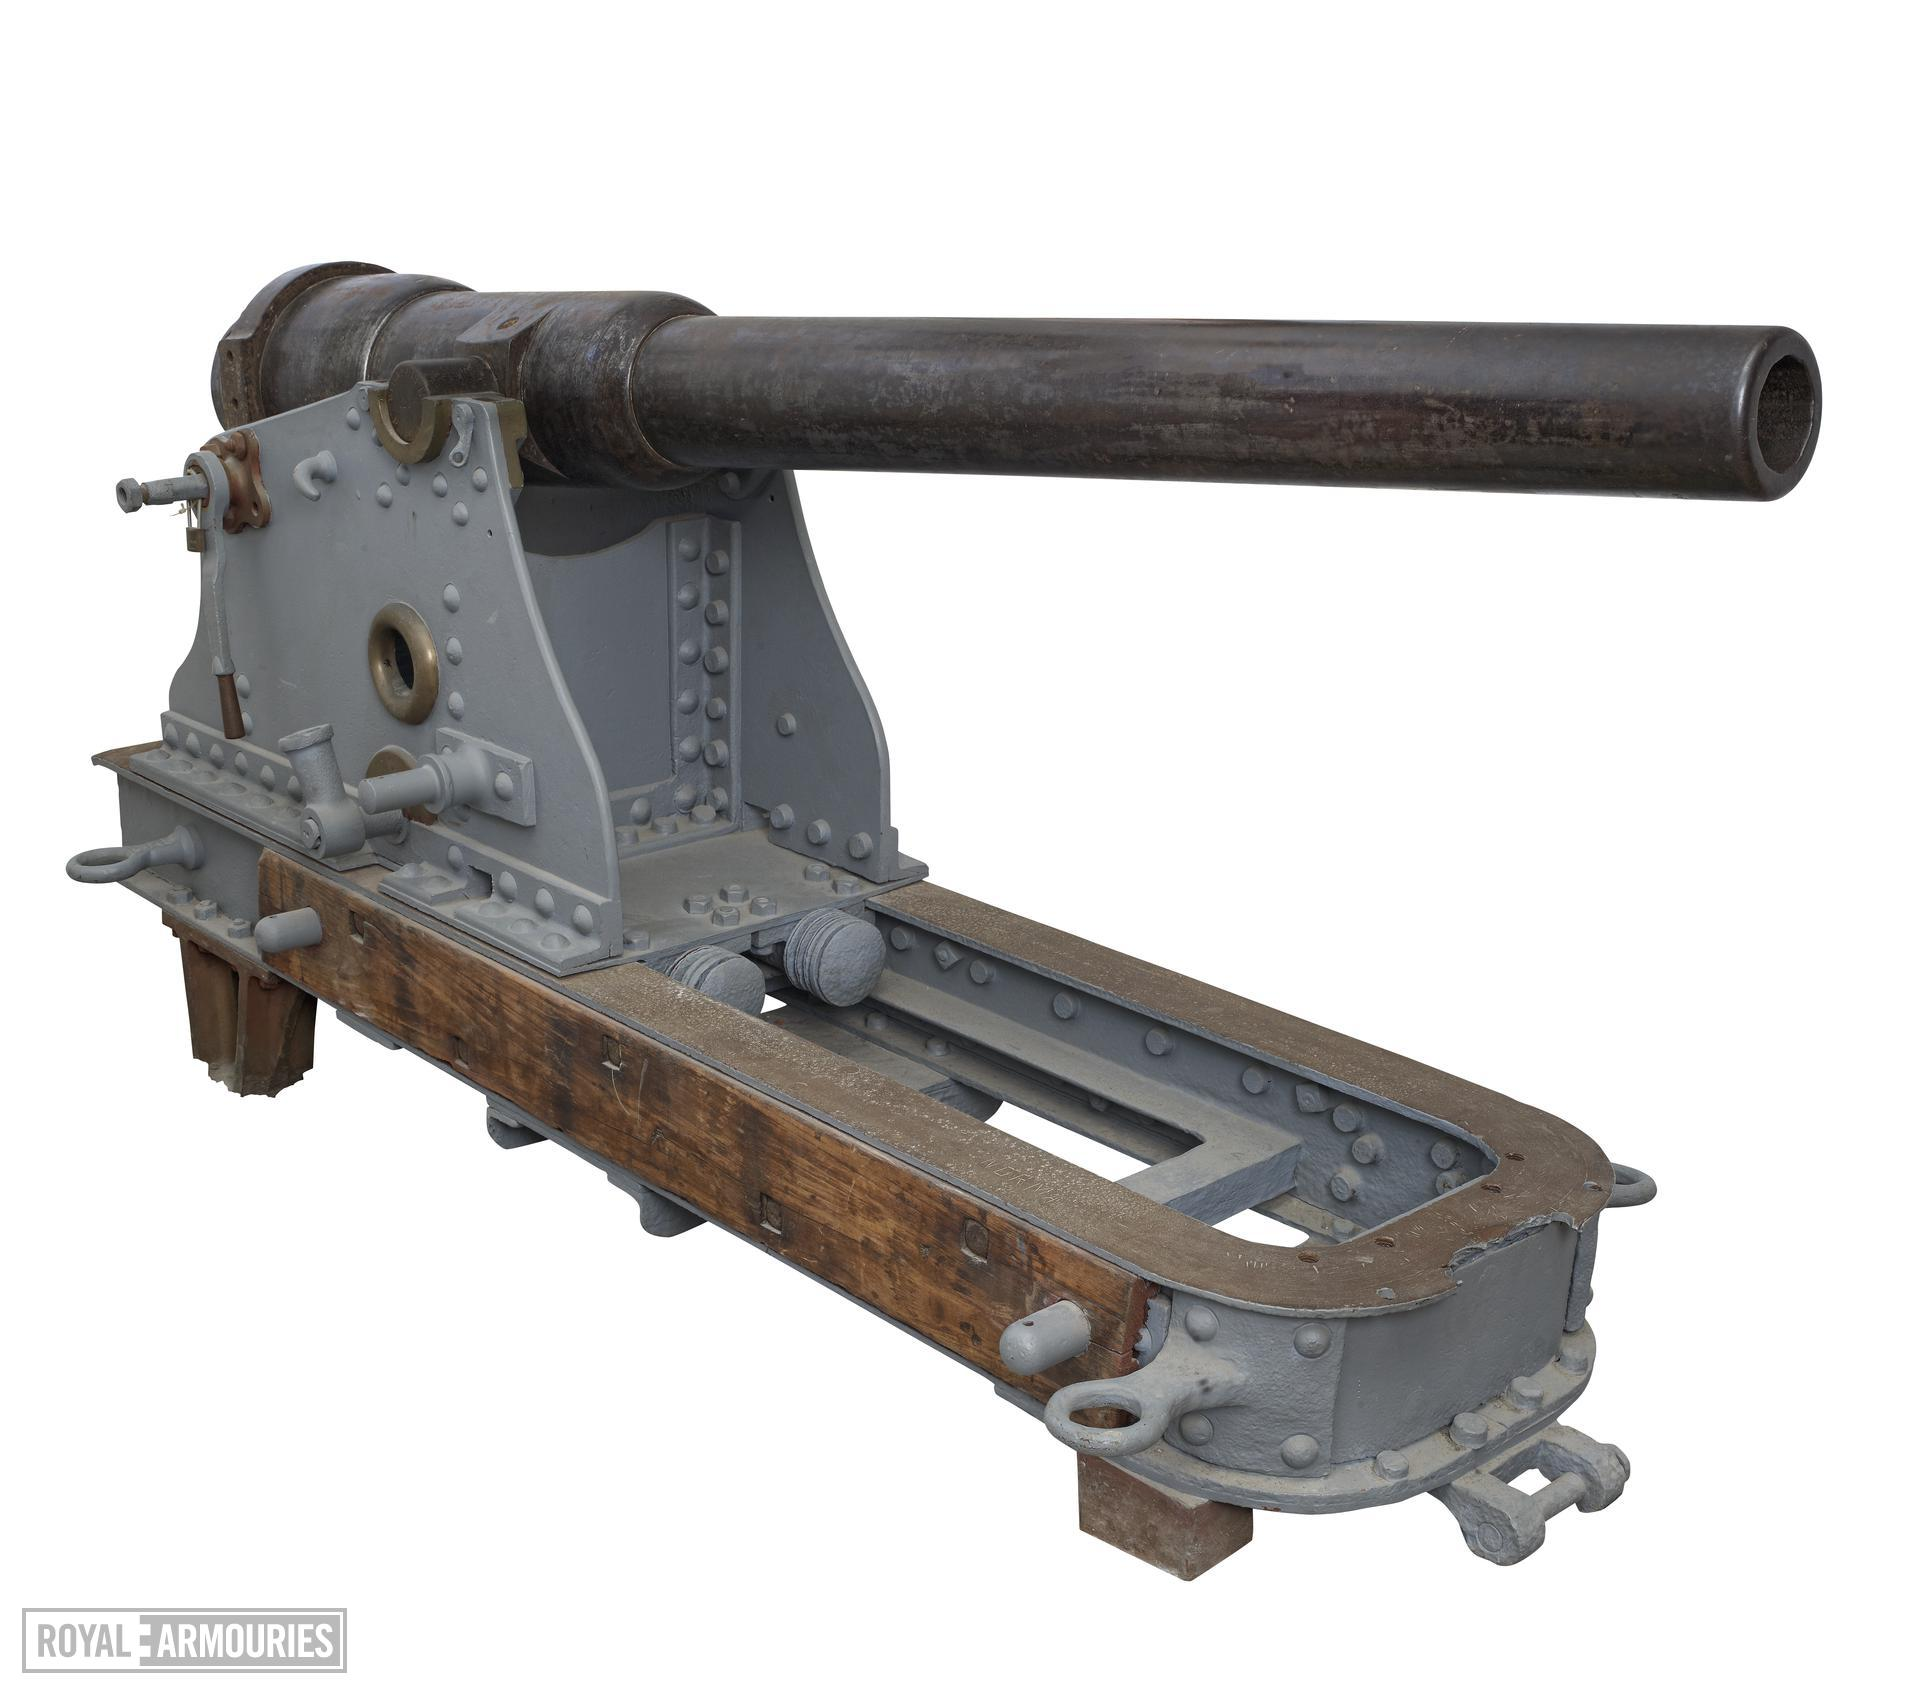 12 pr gun and carriage - 12 pr RML Rifled muzzle-loading (RML) Made of steel _ By Armstrong